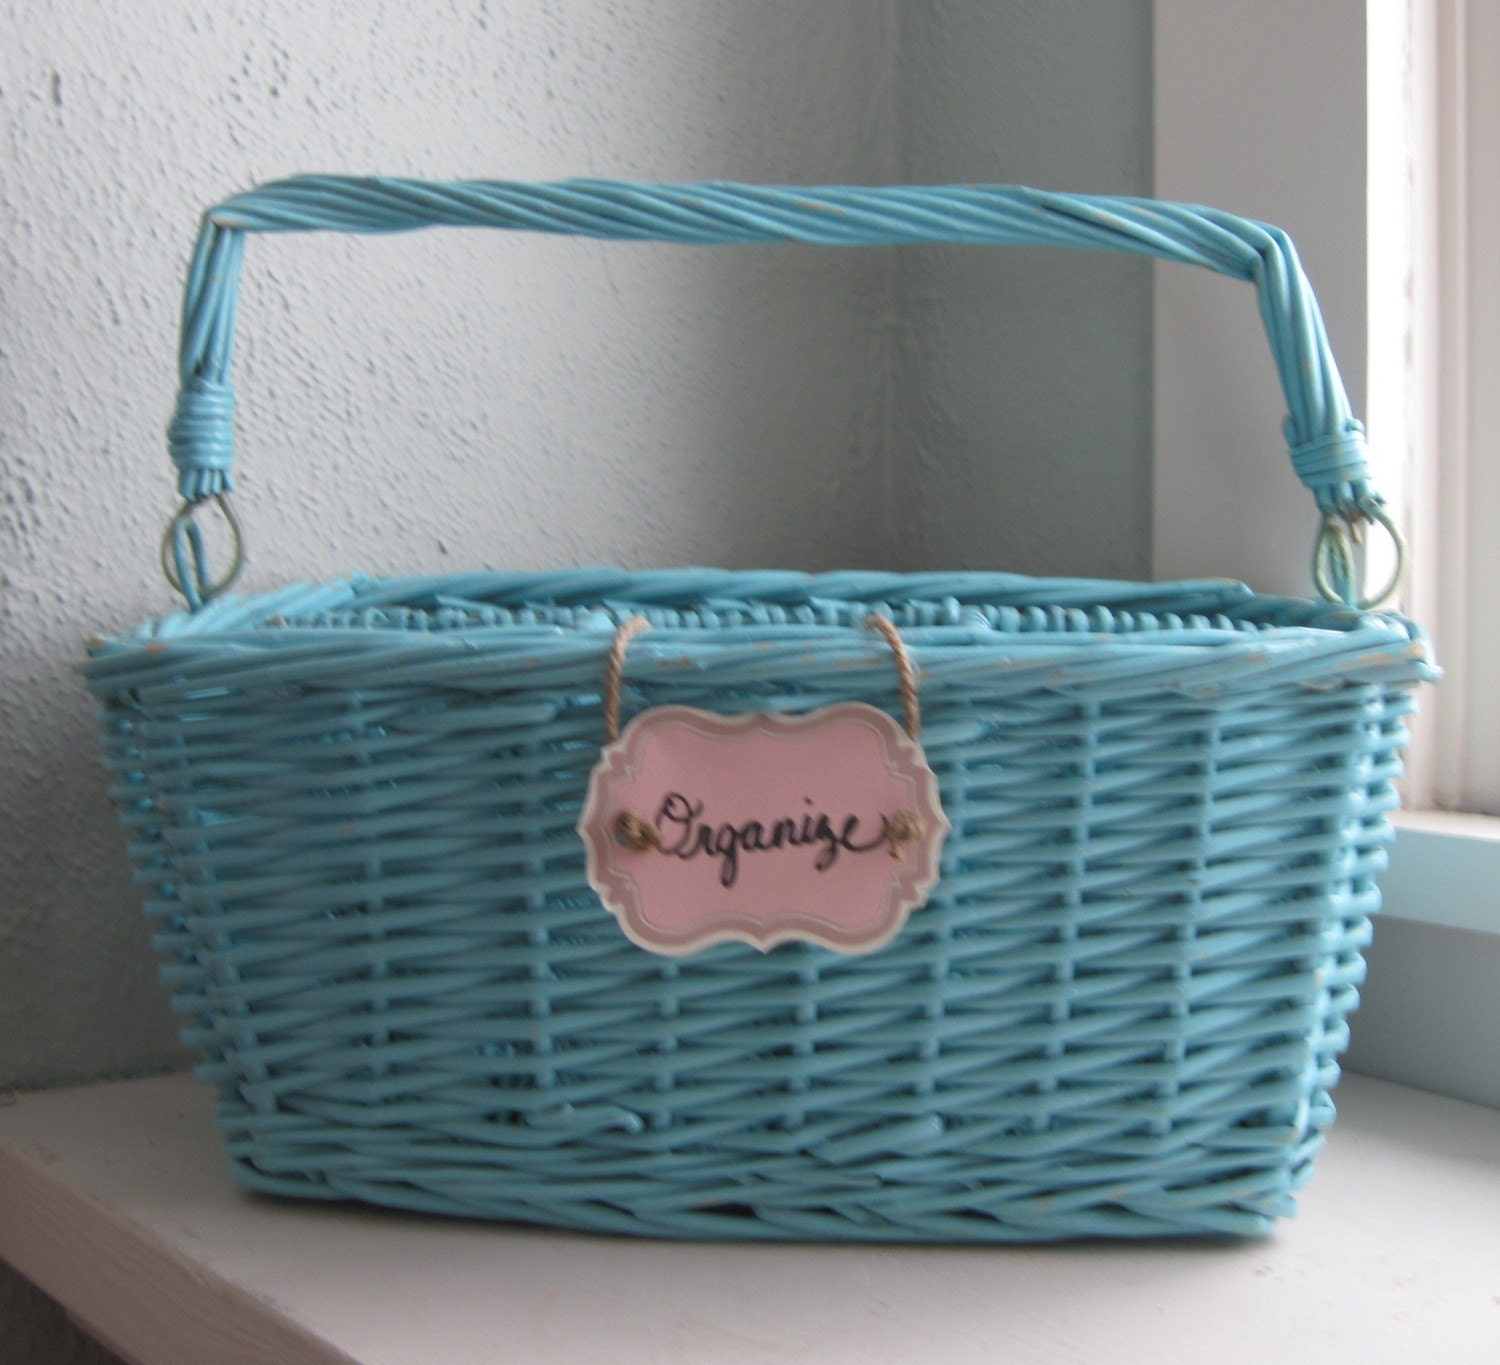 Aqua Blue Divided Basket With Handle For Organizing In 2011